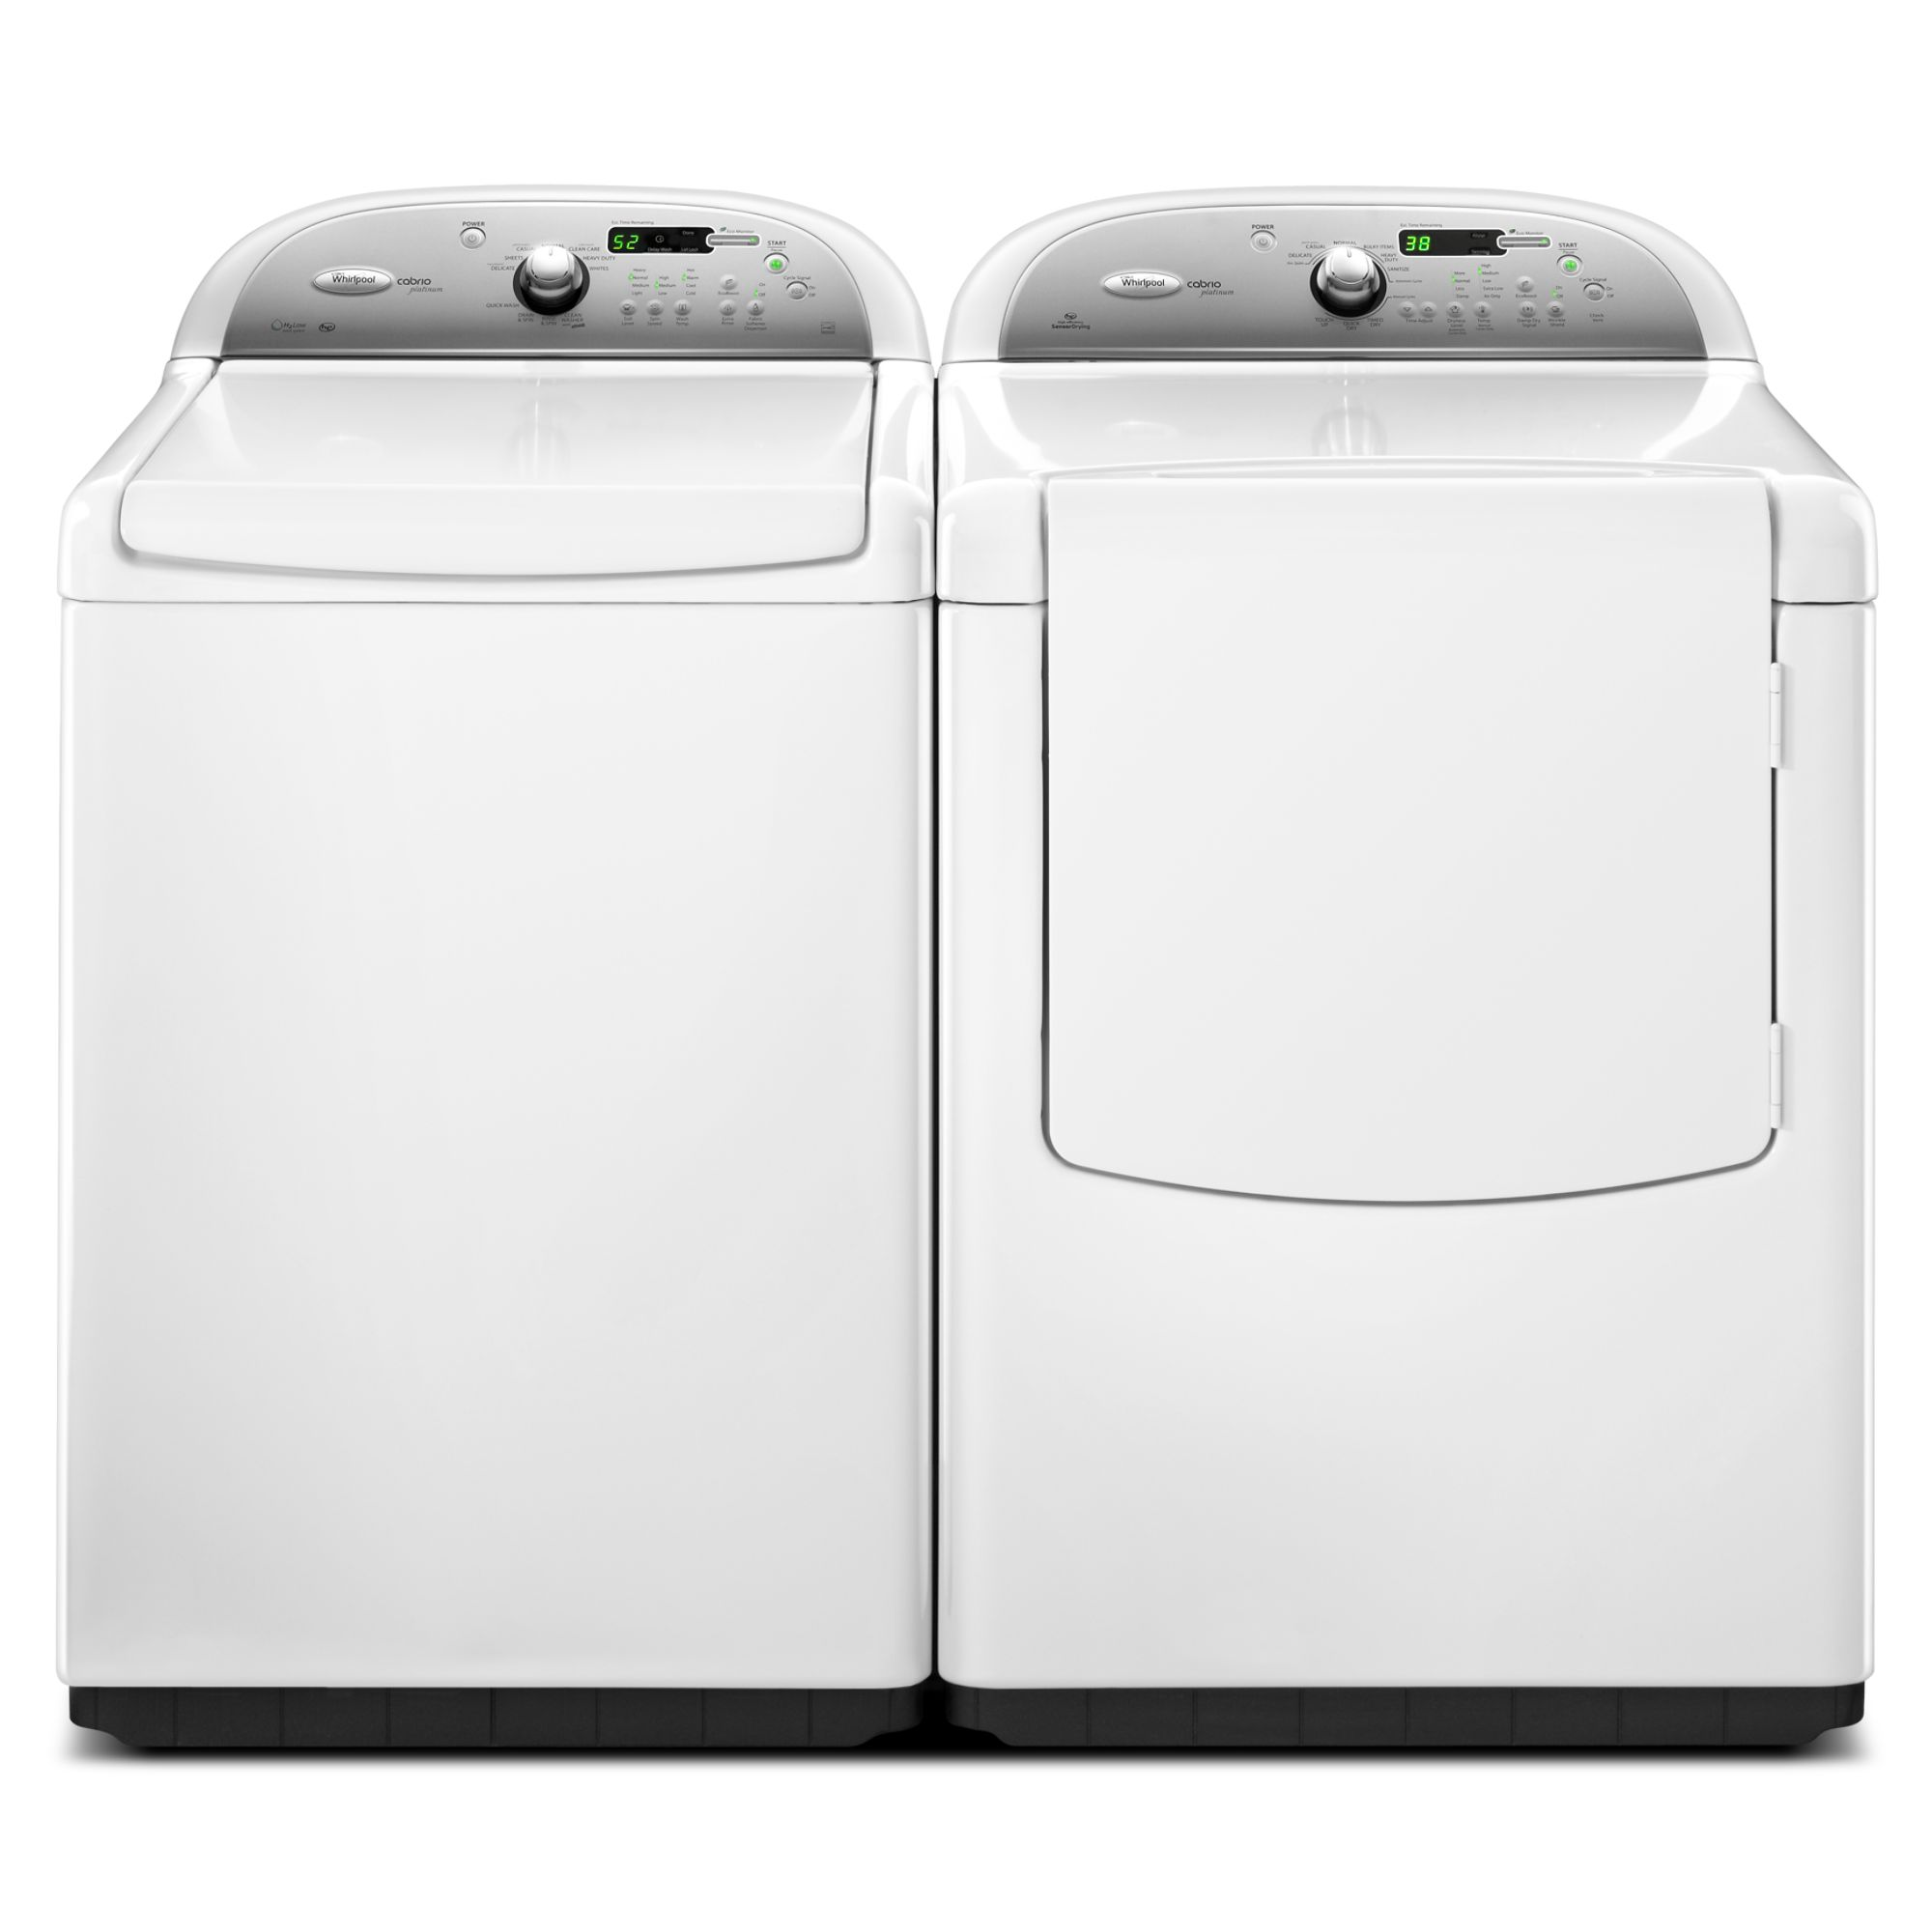 Whirlpool 7.6 cu. ft. Electric Dryer, White